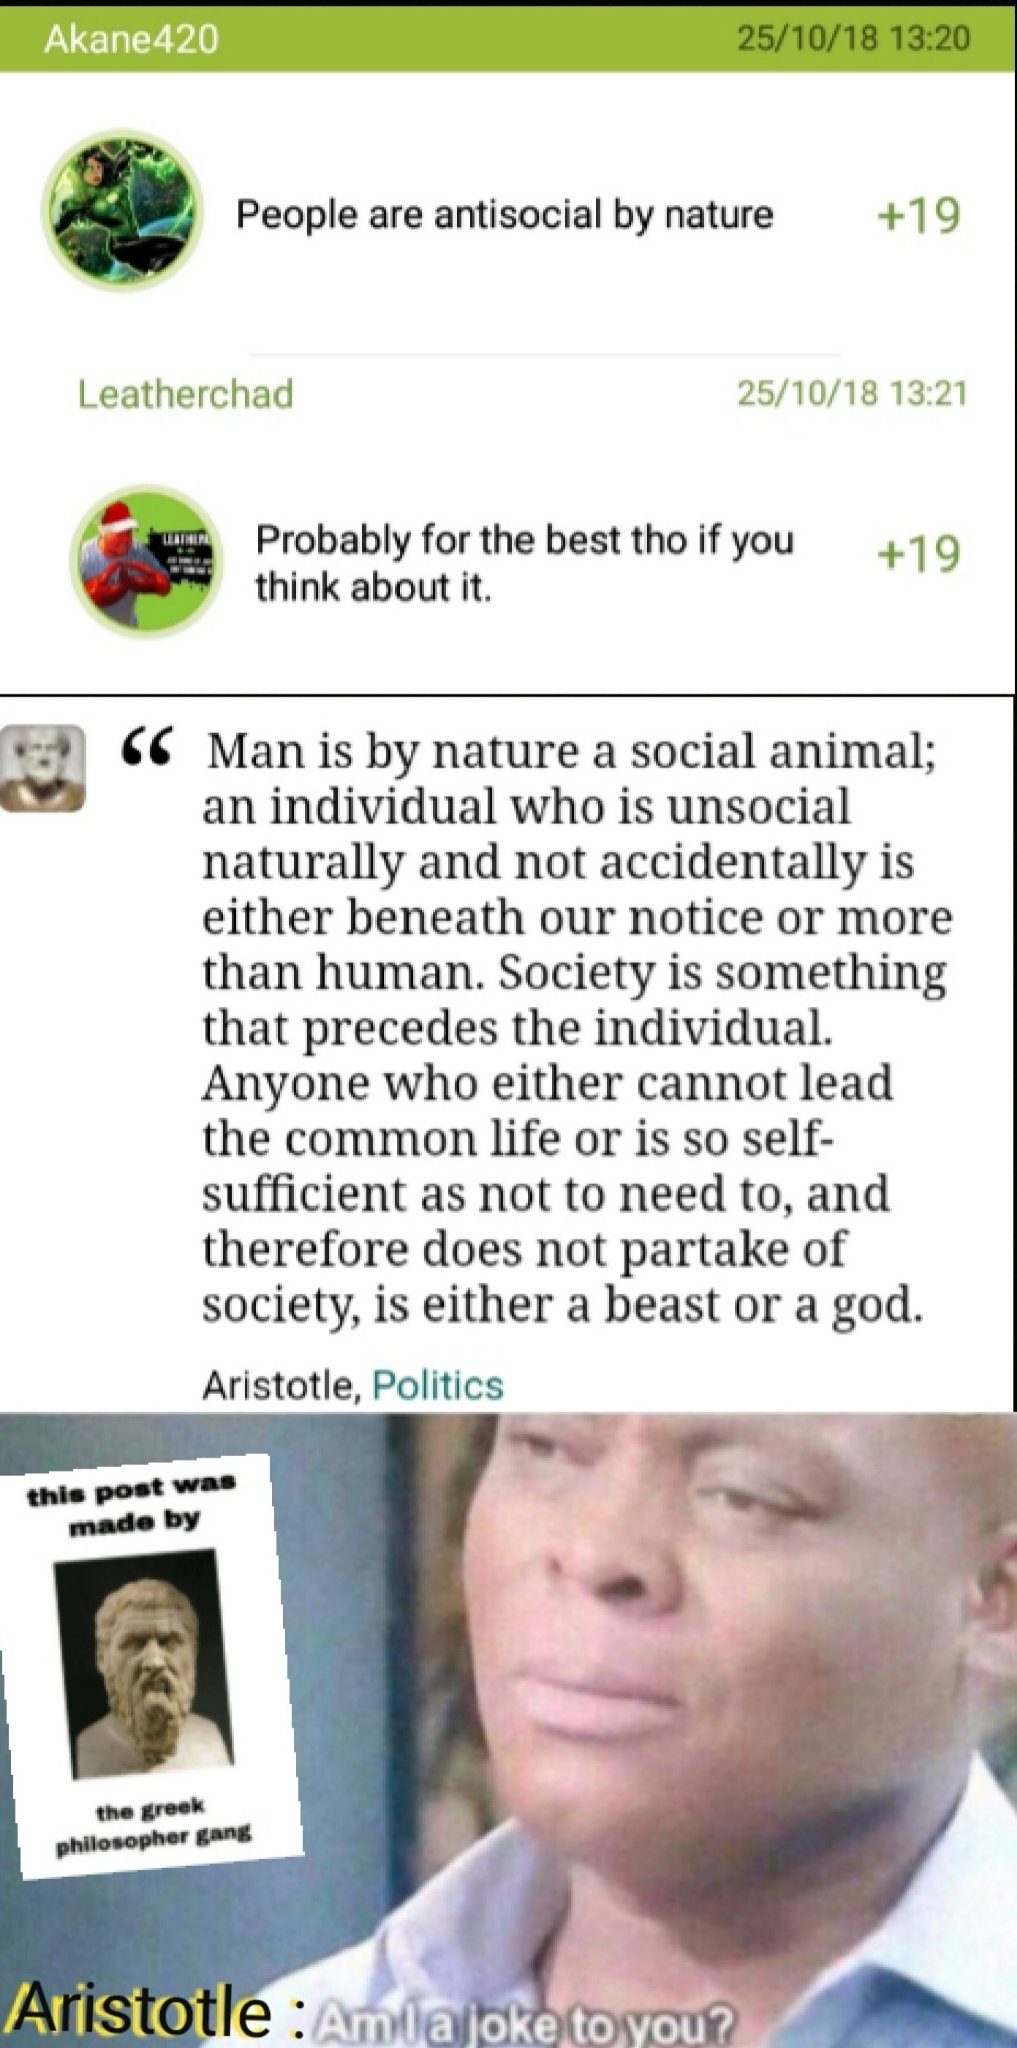 A man is a social creature by nature, if not he is a god or a beast - meme